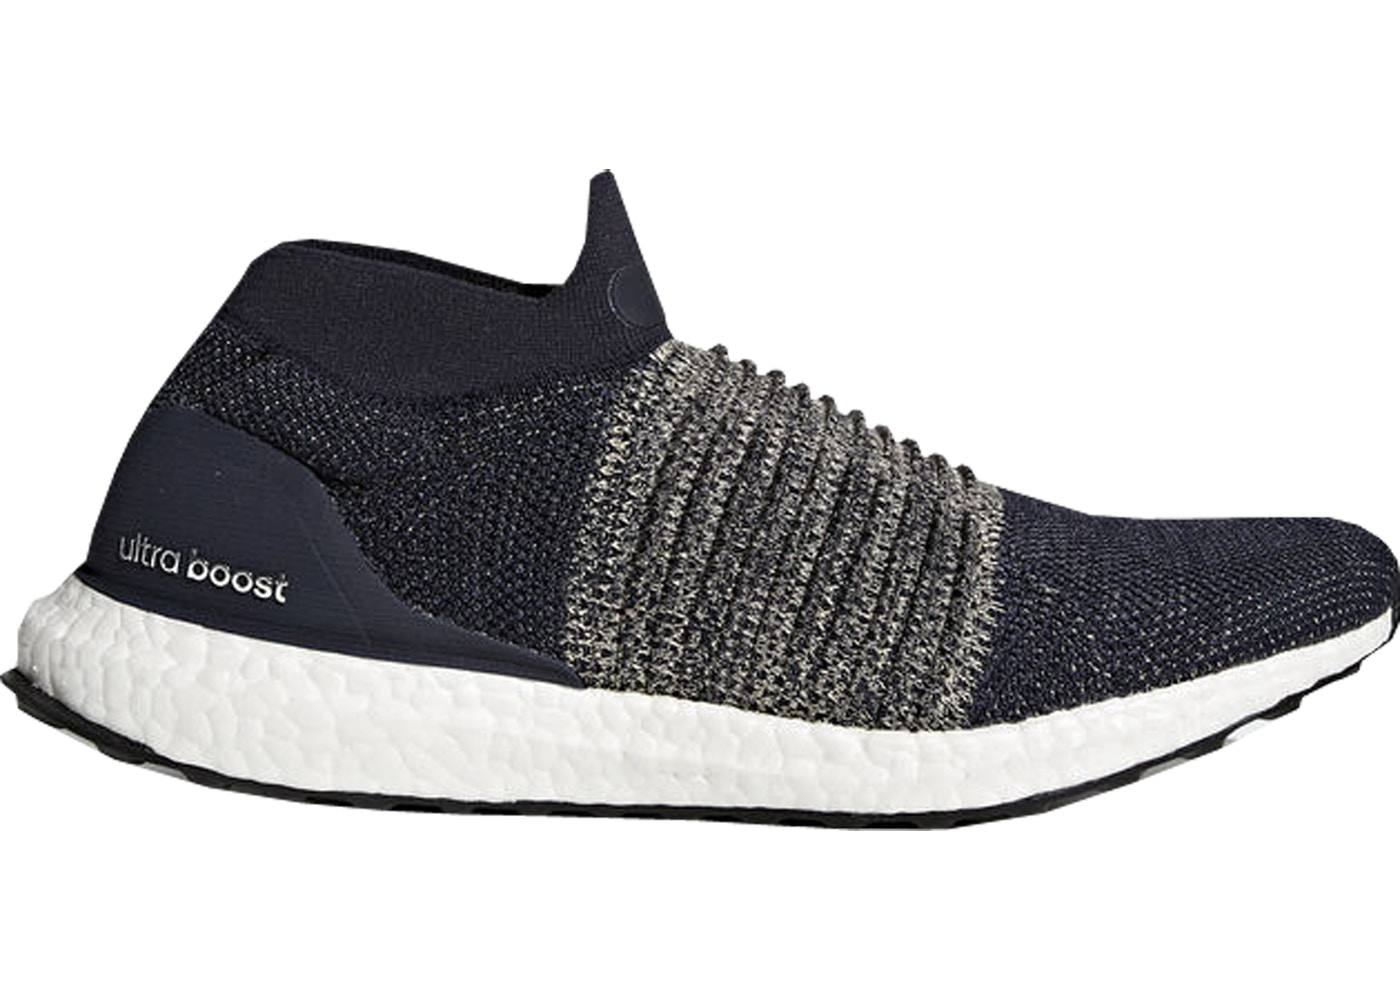 973609beb96ce adidas Ultra Boost Size 14 Shoes - Most Popular